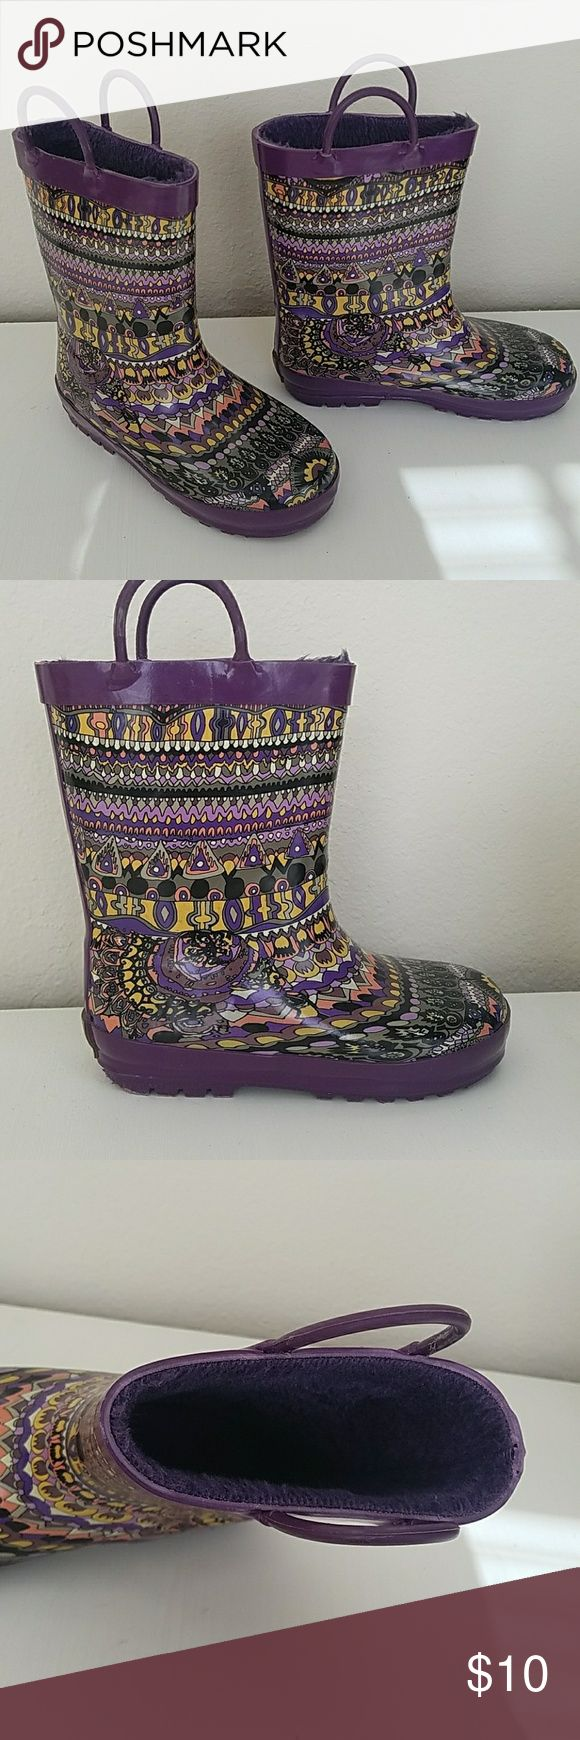 Sakroors girls artistic circle rainbow size 13 Unique and colorful, artist printed rubber rainboots are ideal for splashing around the rain, snow, hail or whatever else mother nature throws at you! Rubber outsole Slip on entry Sakroots Shoes Rain & Snow Boots